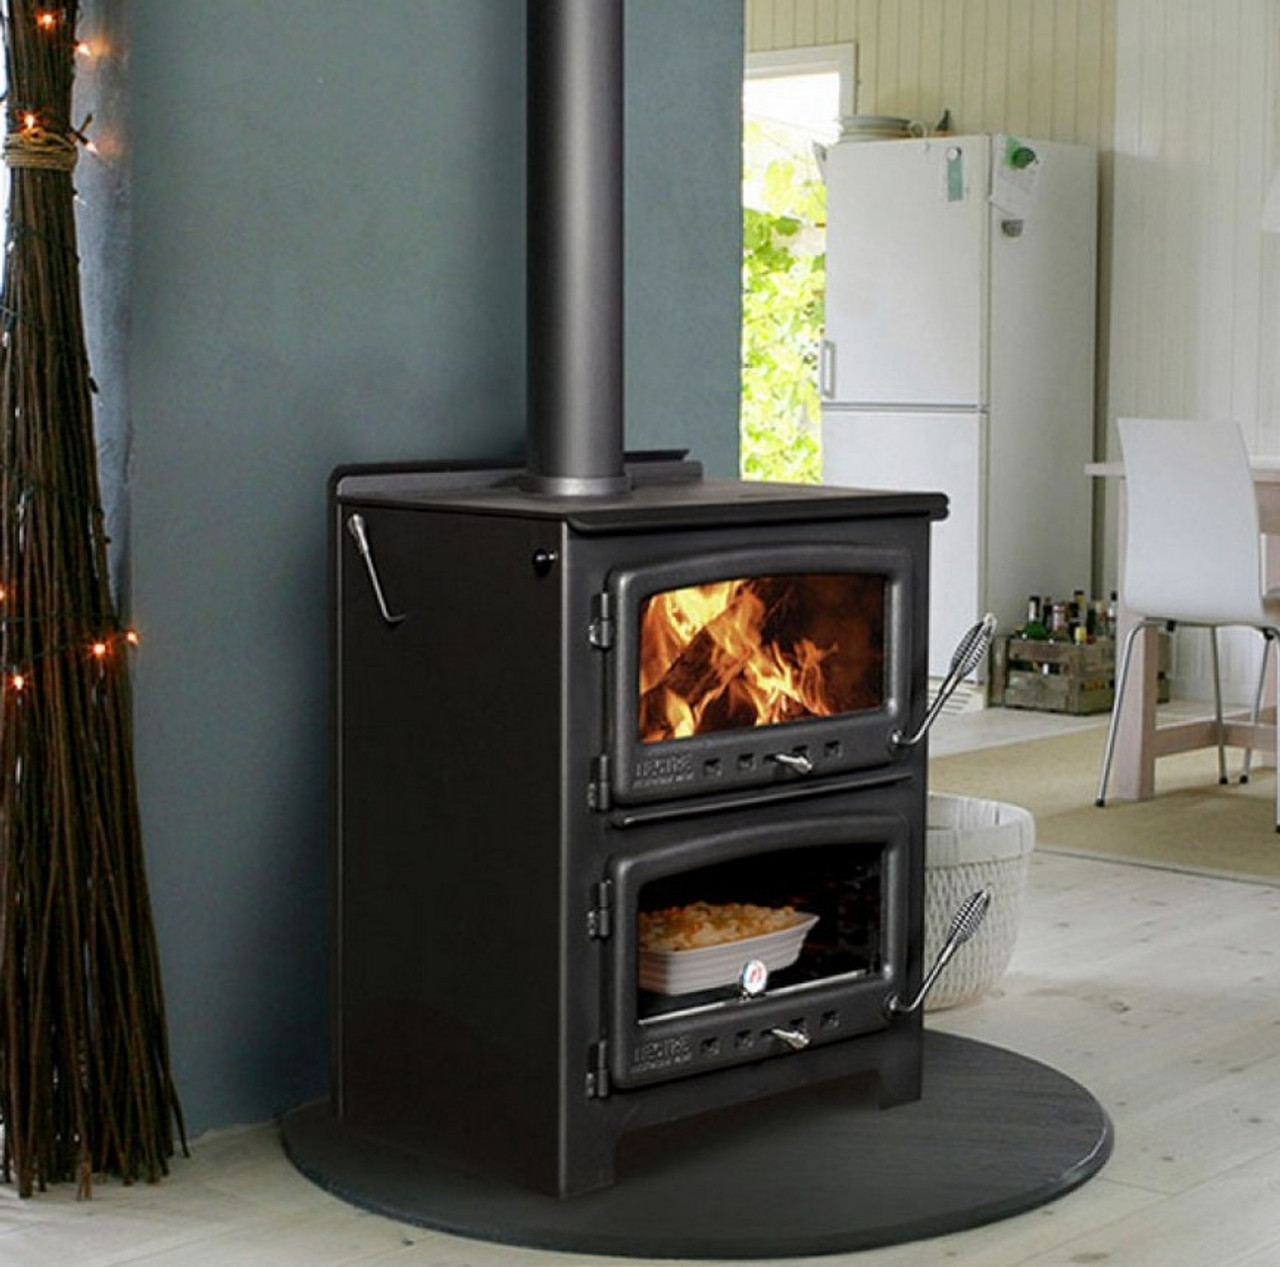 Nectre N550 Wood Cook Stove